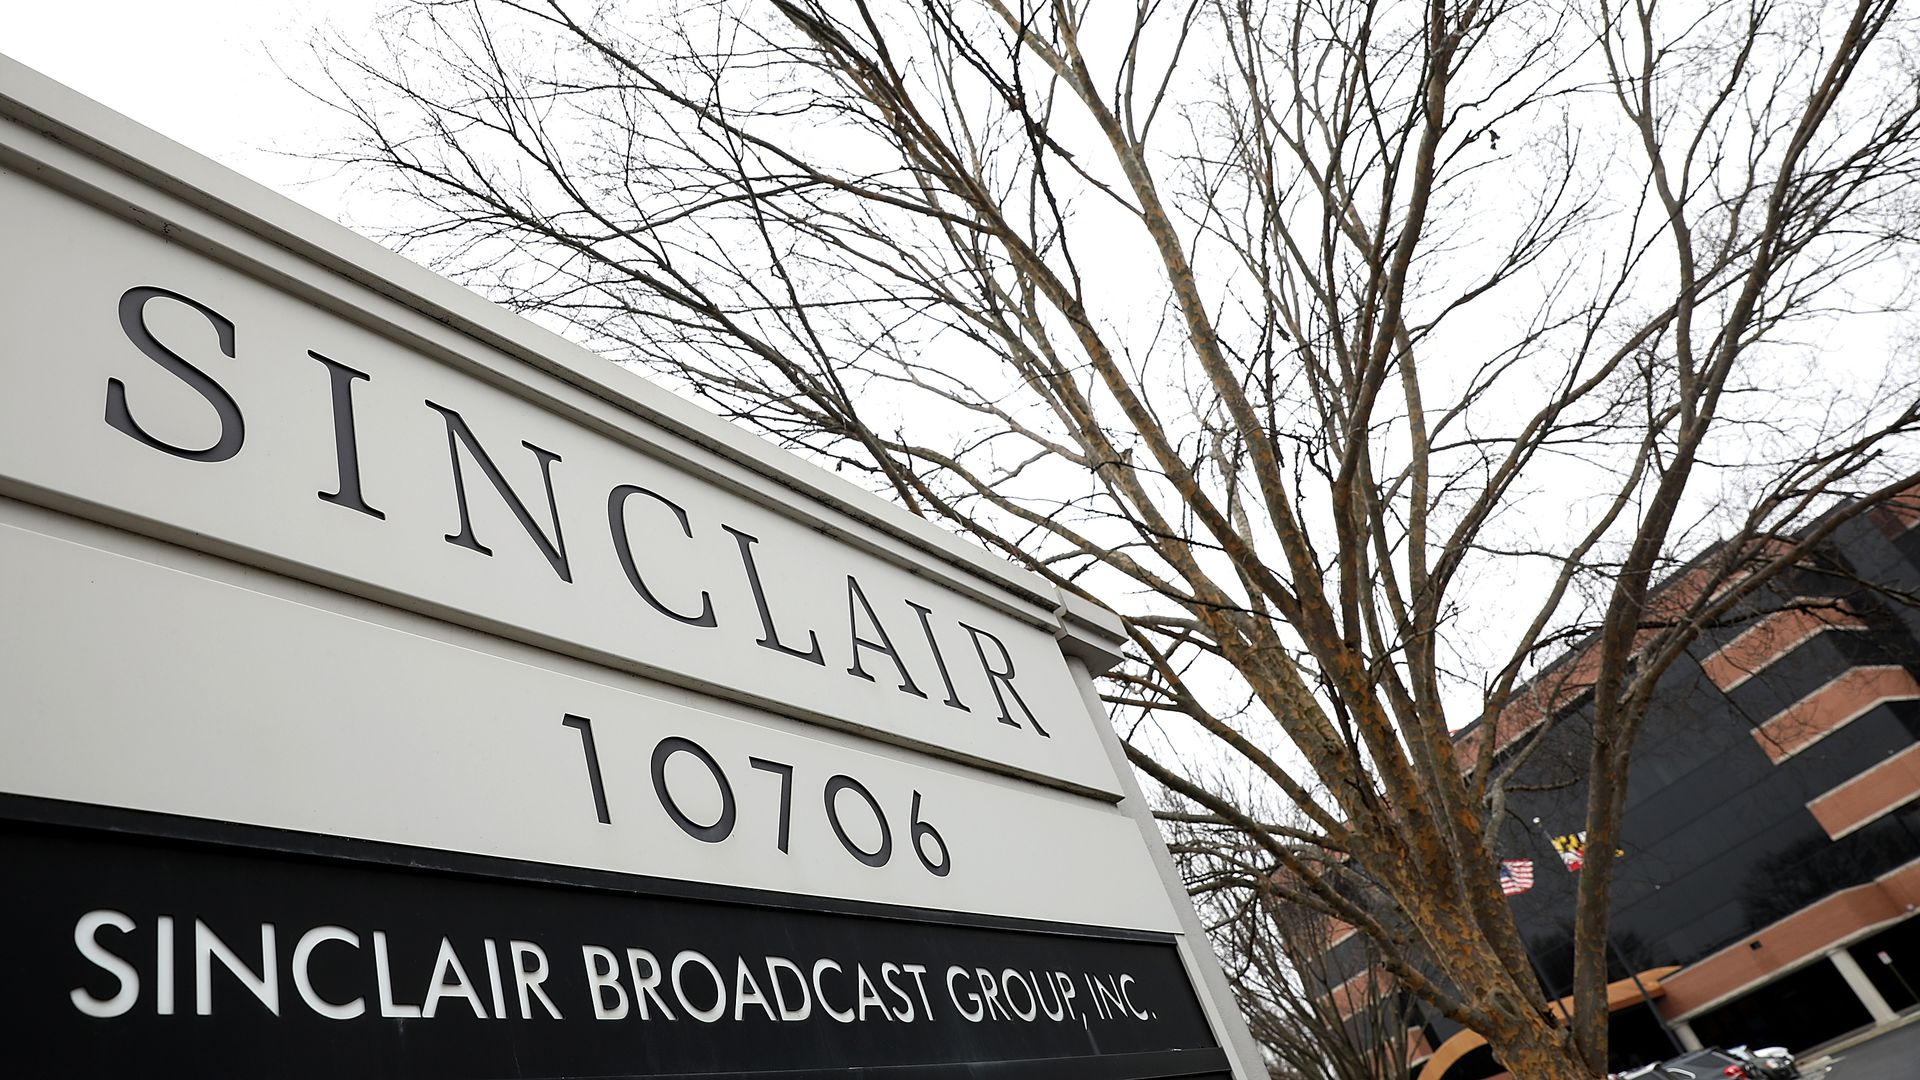 Sinclair broadcasting group sign.